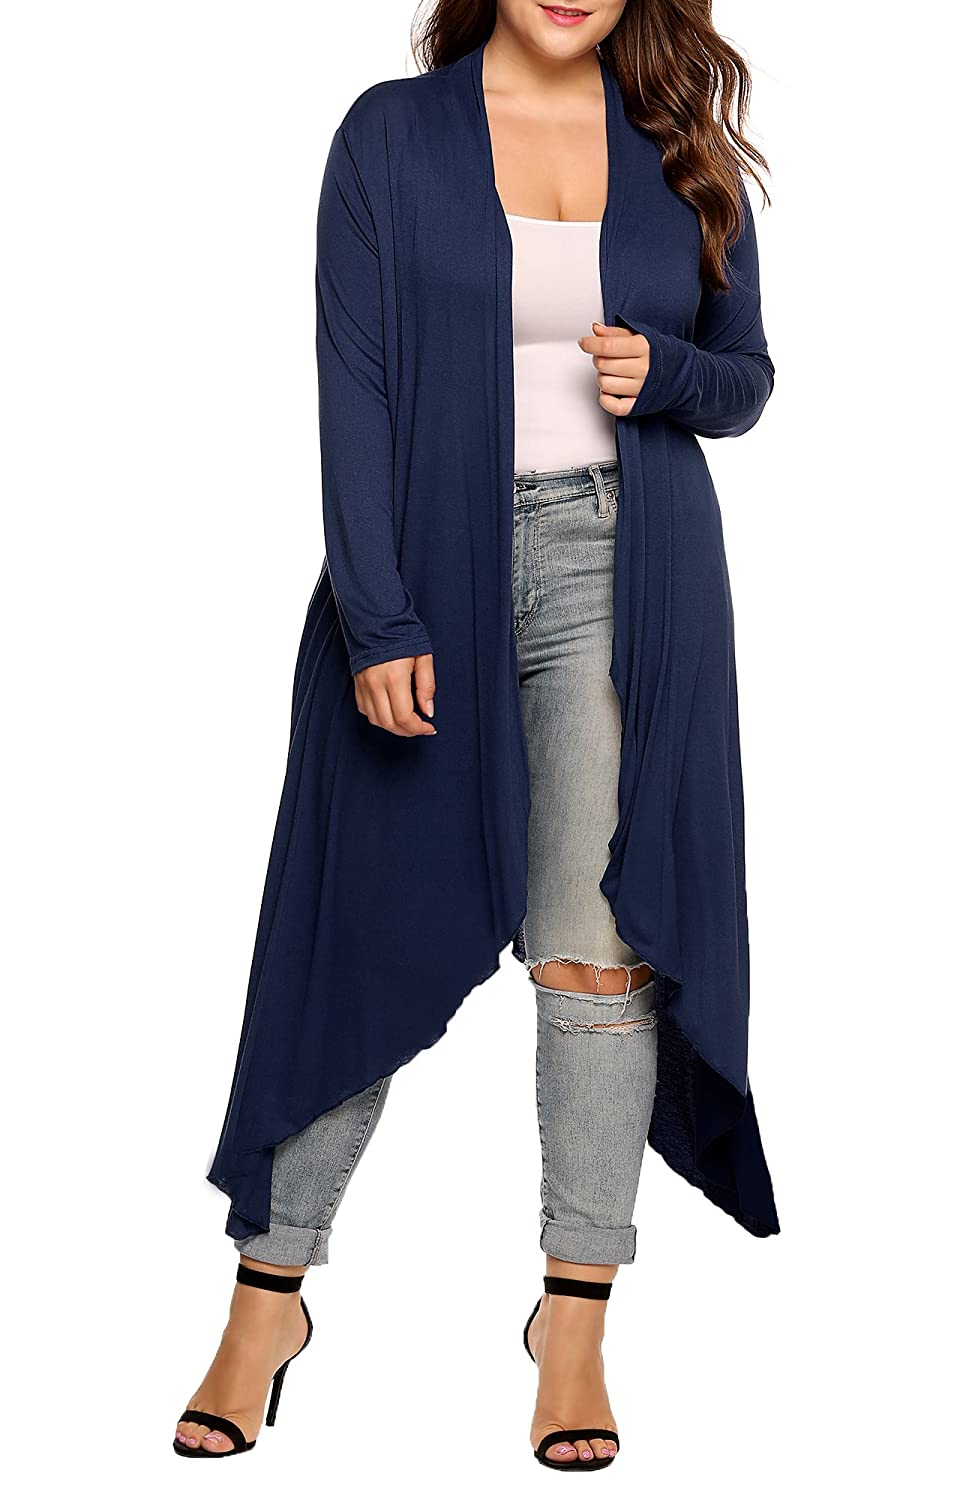 INVOLAND Womens Plus Size Cardigan Long Sleeve Open Front Drape Cardigans Lightweight Long Duster